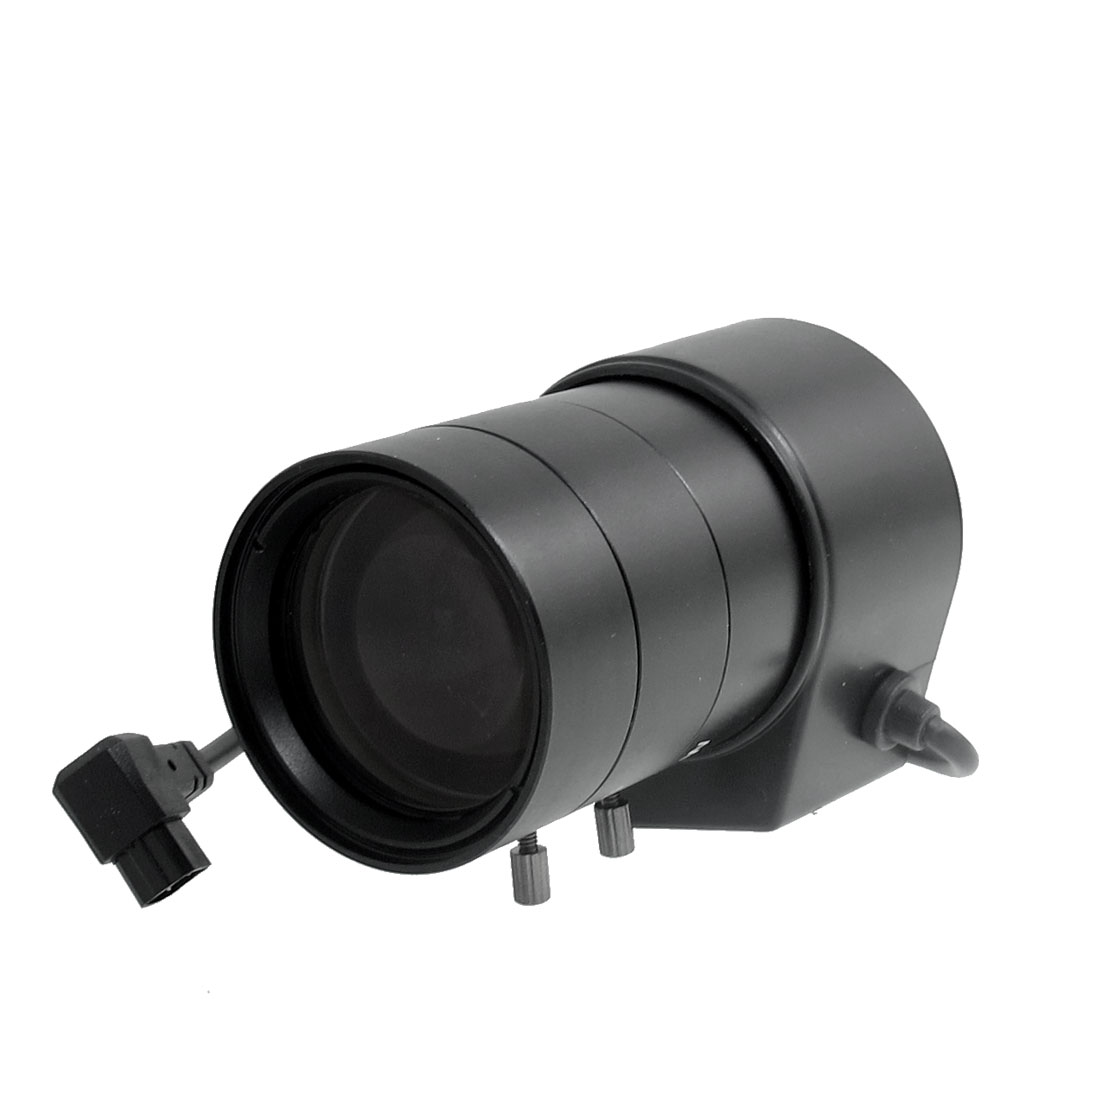 "F1.6 Aperture 1/3"" CS Mount Focal 6.0-60mm CCTV Lens"